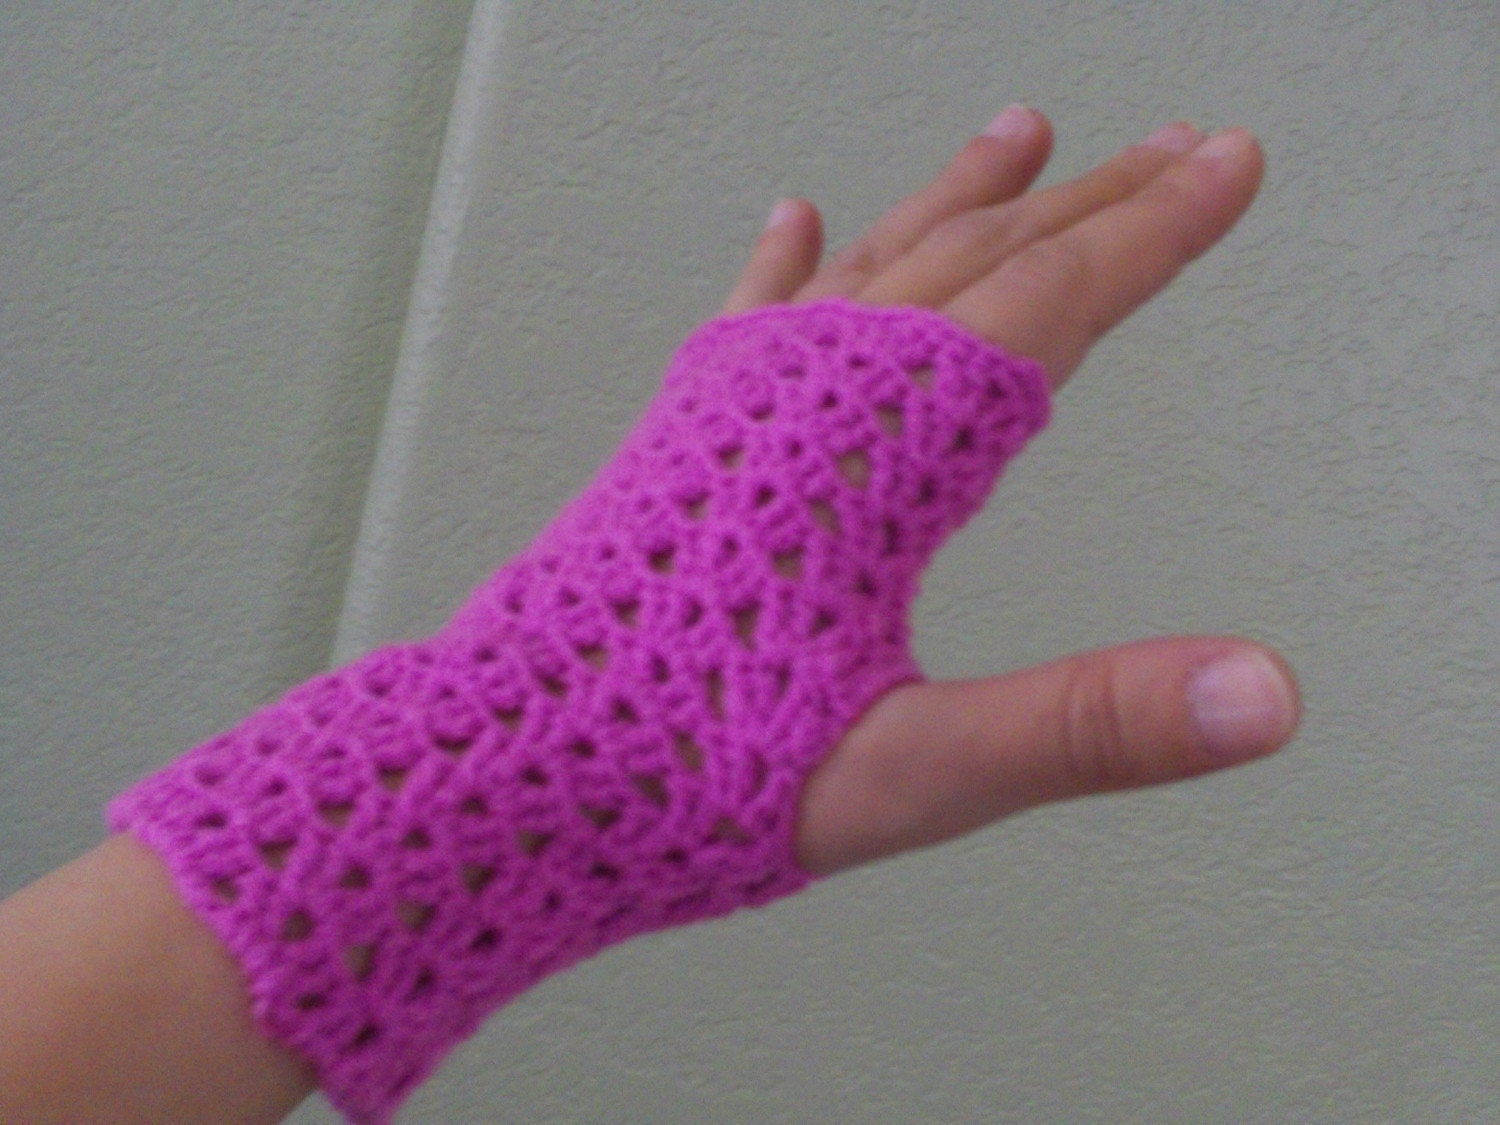 pink crochet fingerless gloves-FREE SHIPPING